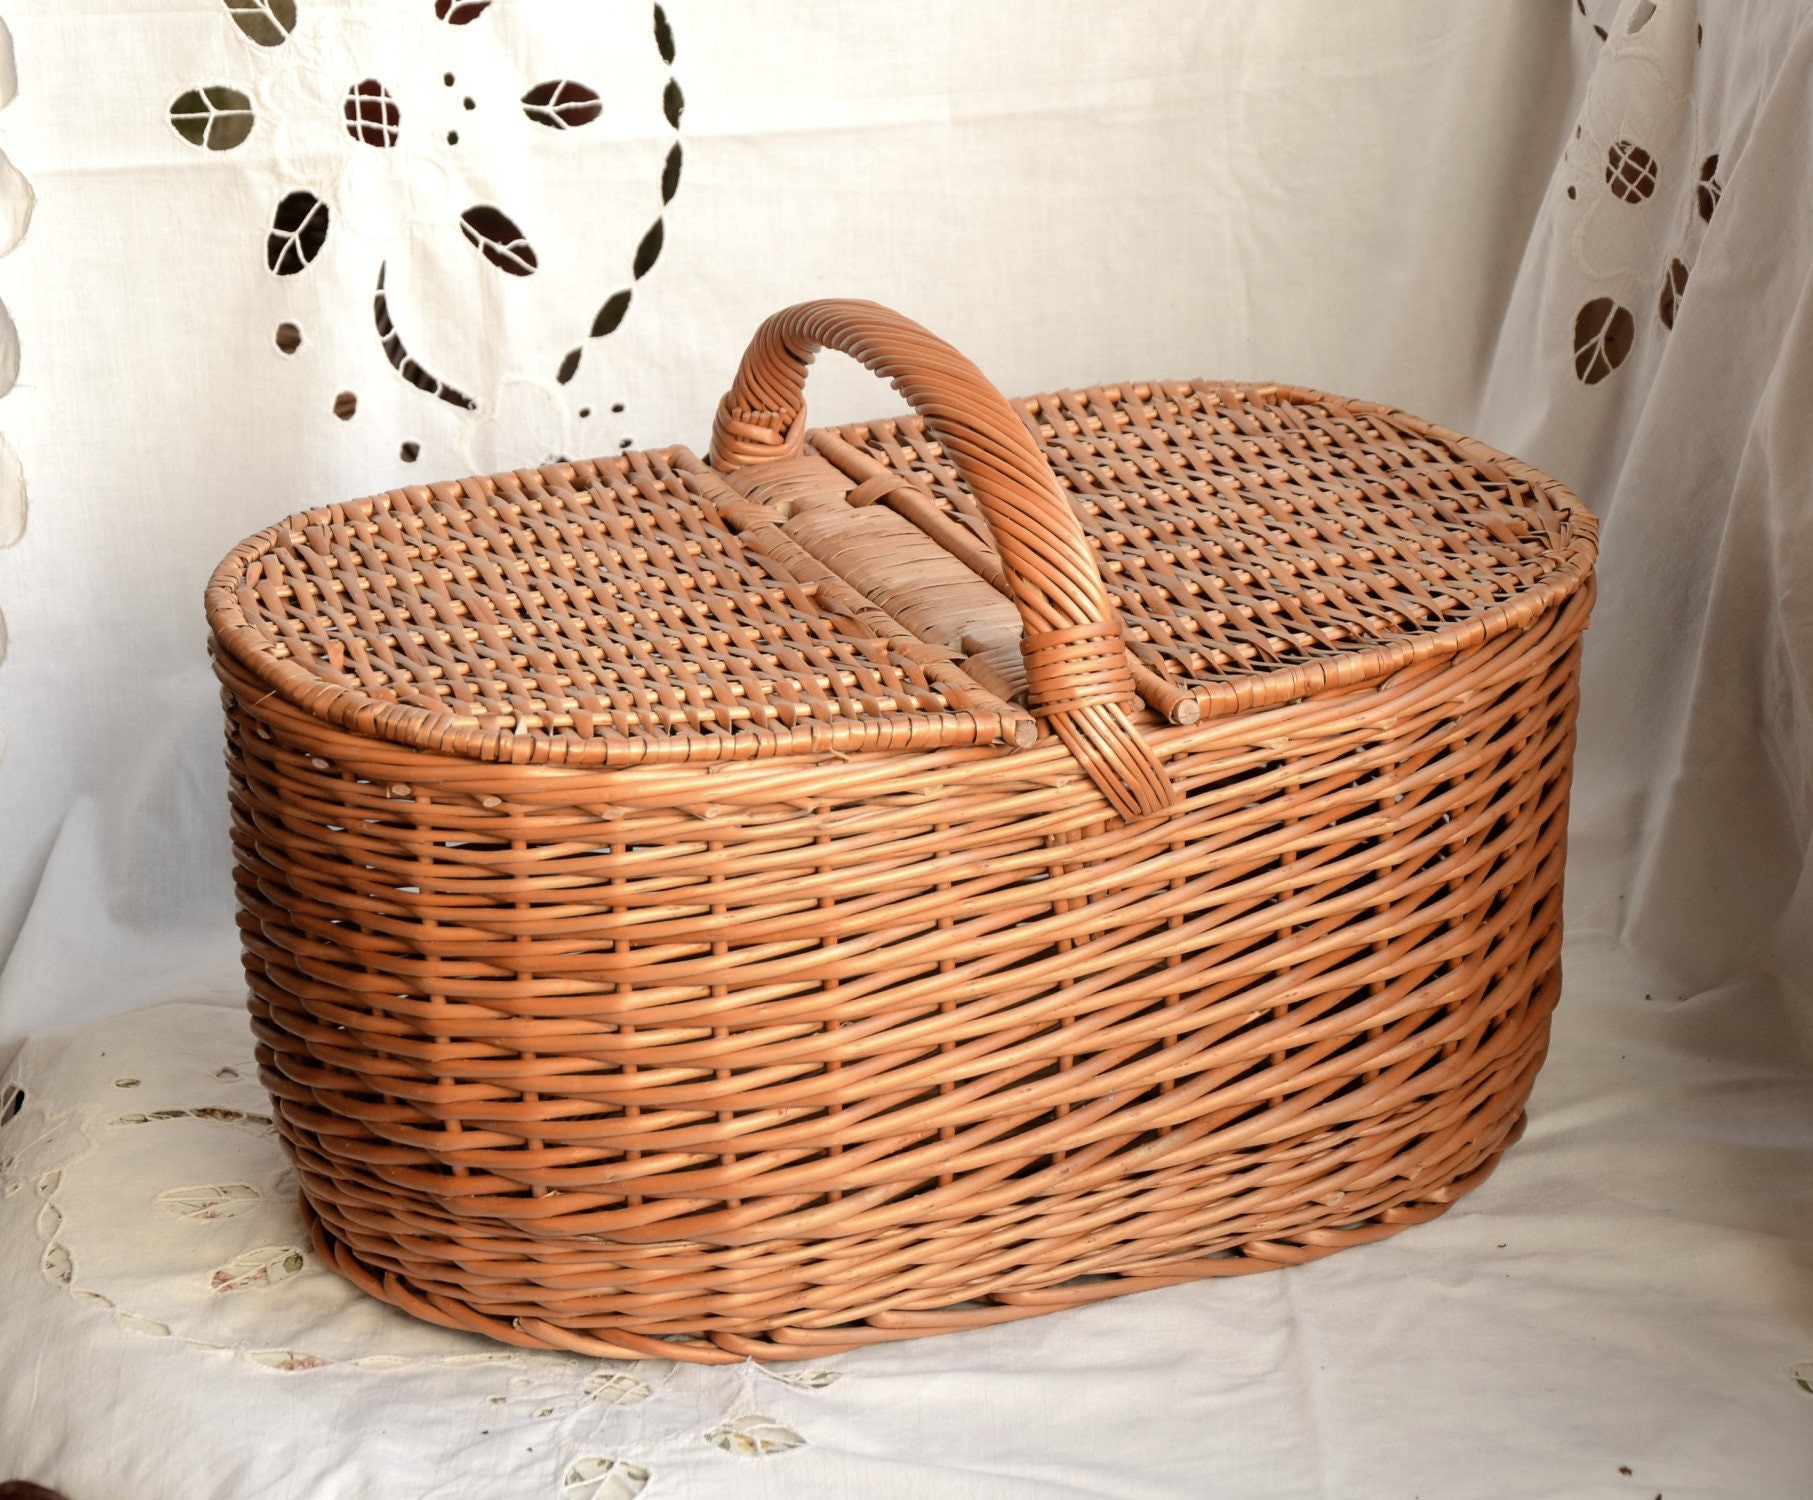 Myer Wicker Picnic Basket : Large picnic basket wicker willow